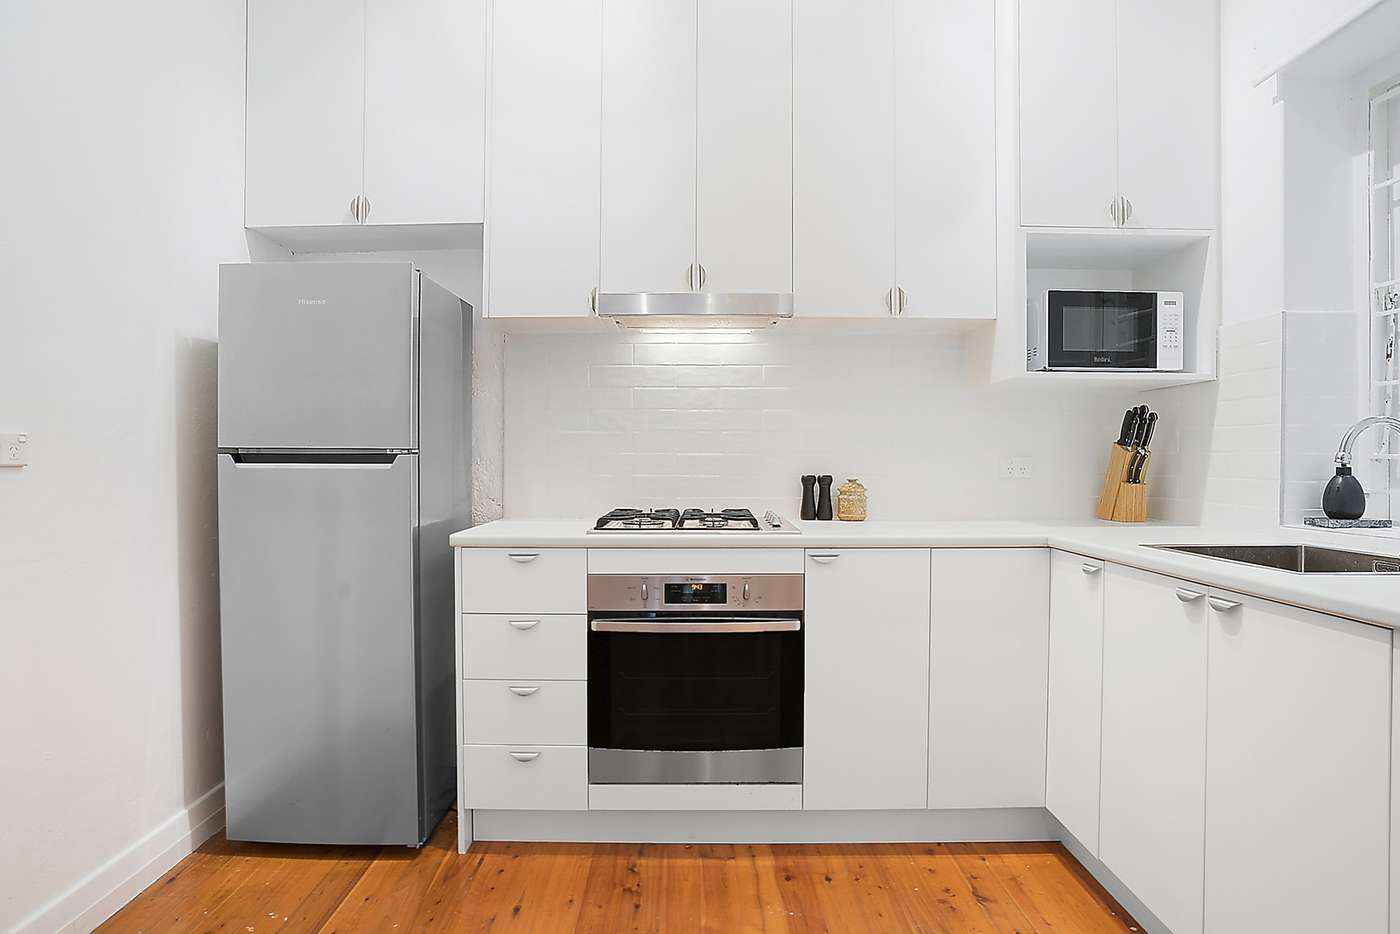 Sixth view of Homely apartment listing, 1/2 Clapton Place, Darlinghurst NSW 2010